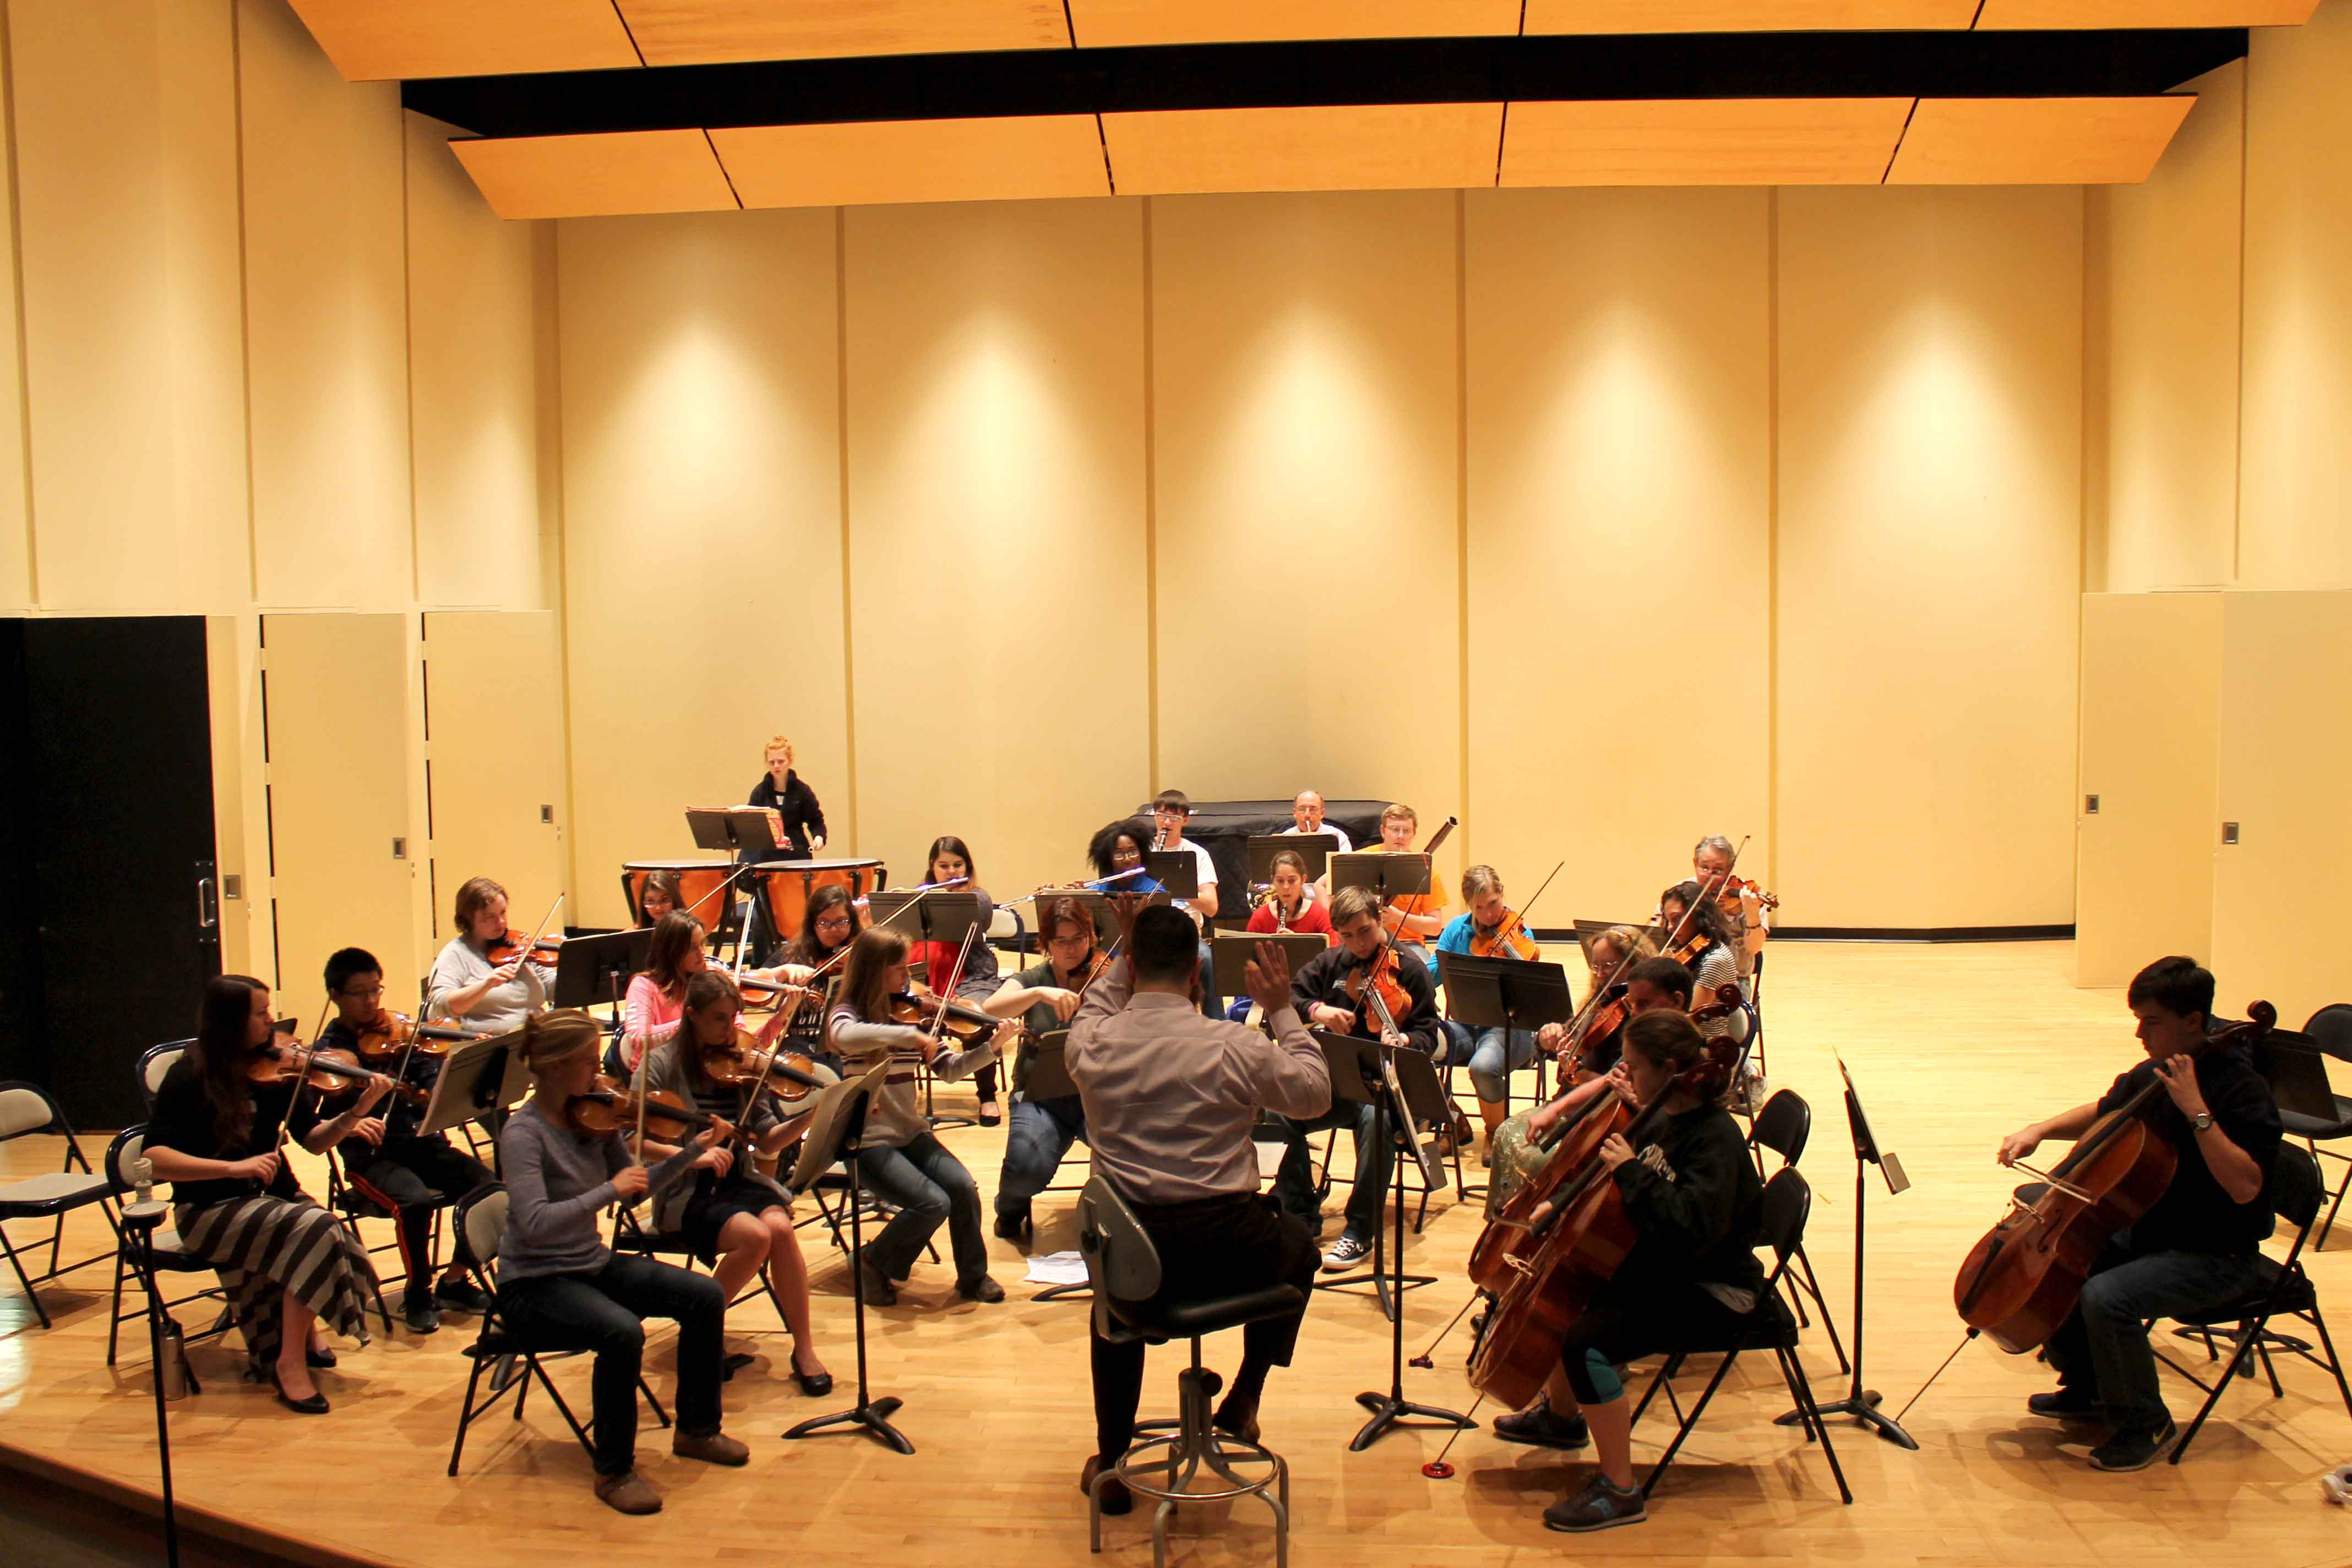 The Chamber Orchestra, led by Jonathan Moser, rehearsing for their upcoming concert.